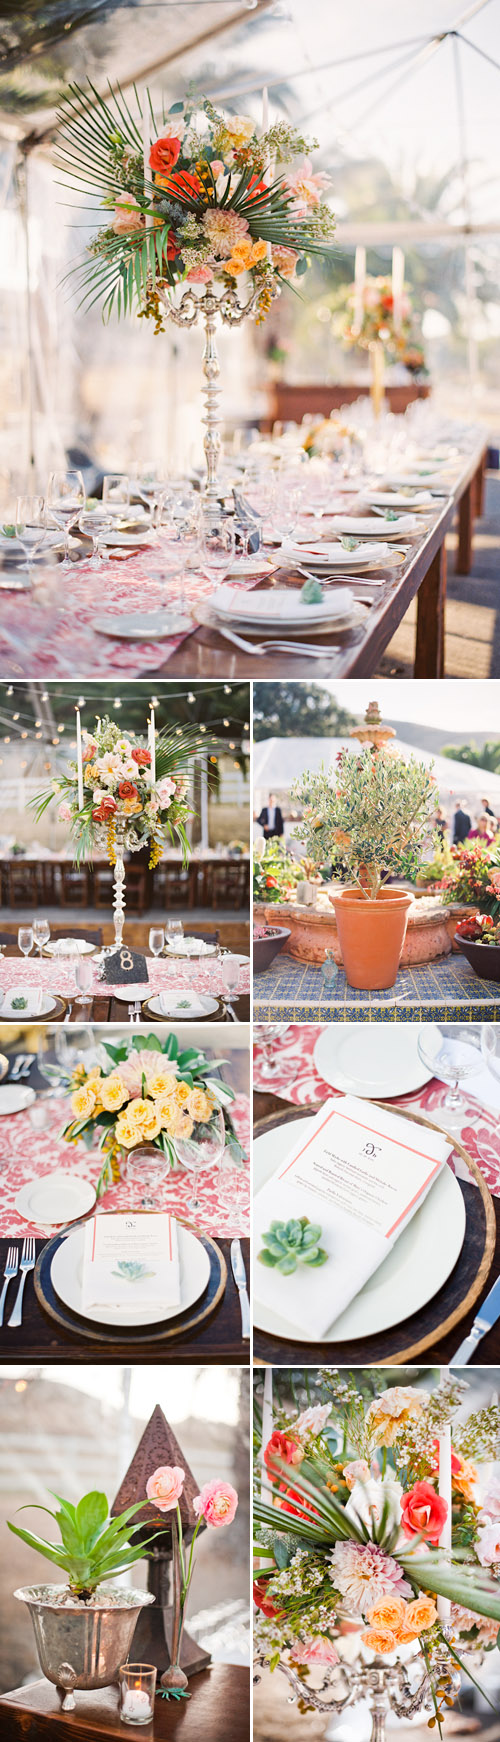 Wedding floral tabletop design with succulents, Spanish old-california wedding decor at La Familia Ranch in San Luis Obispo, CA